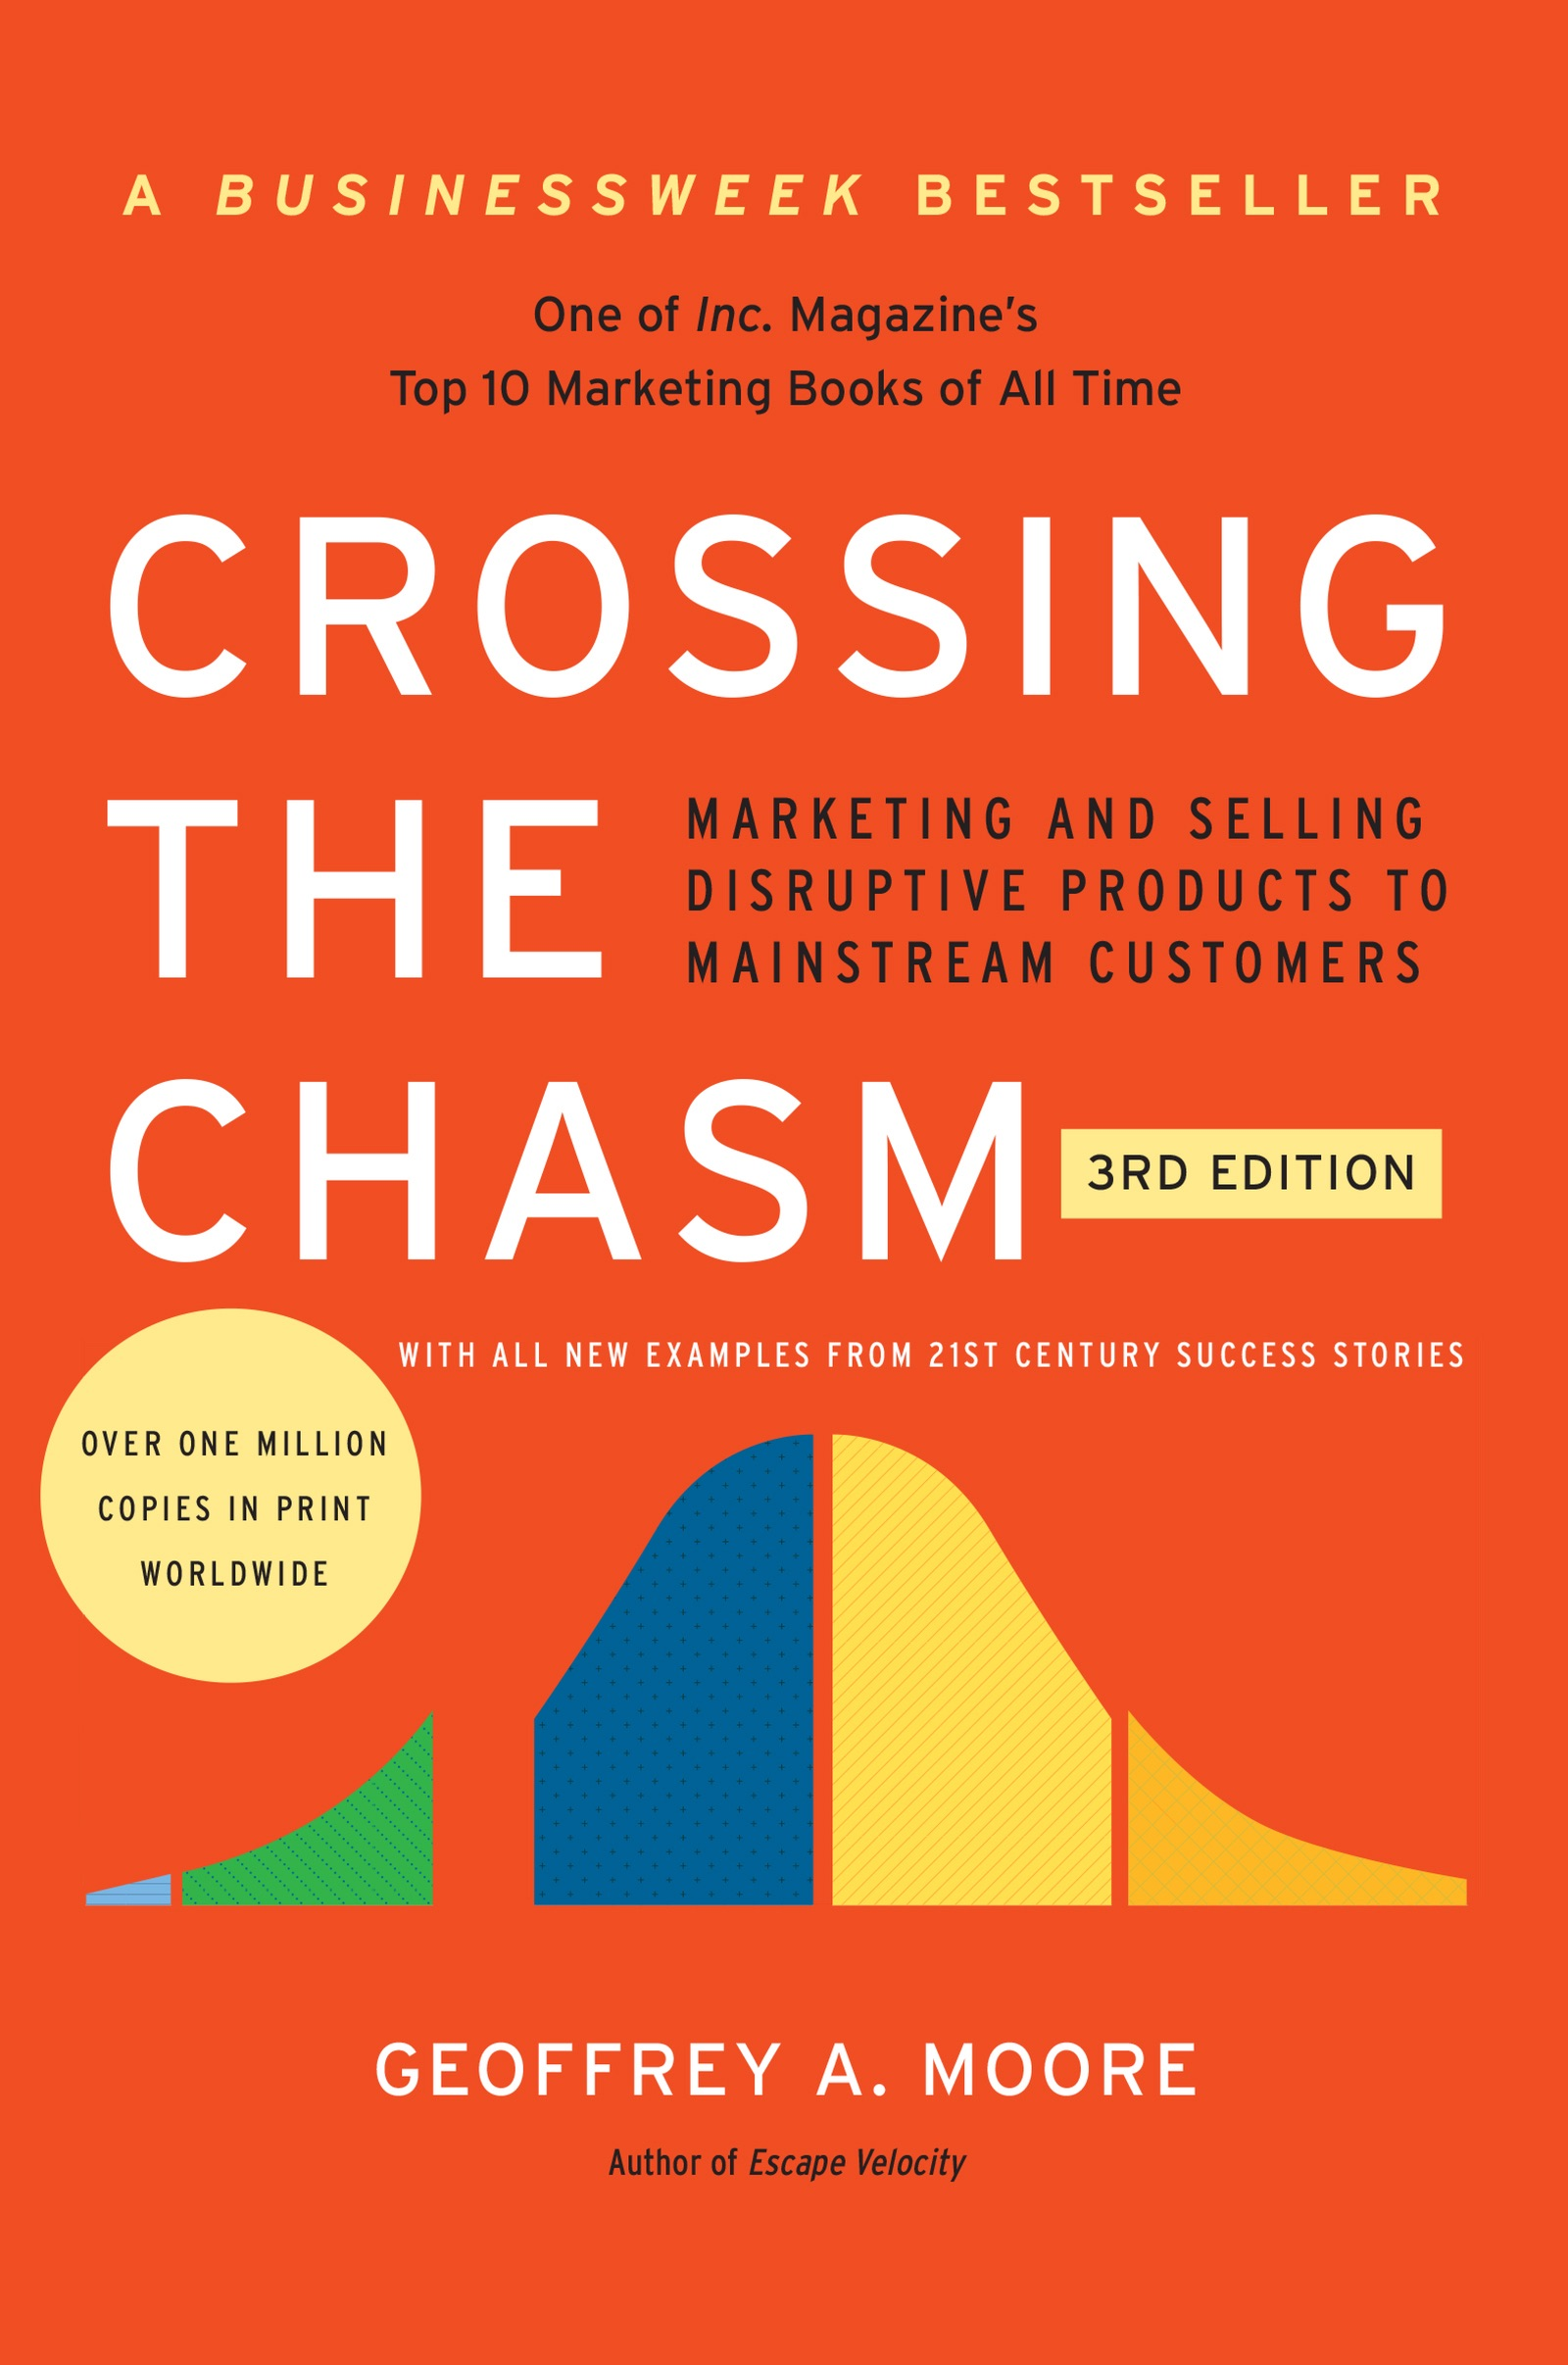 Book Cover of Crossing the Chasm